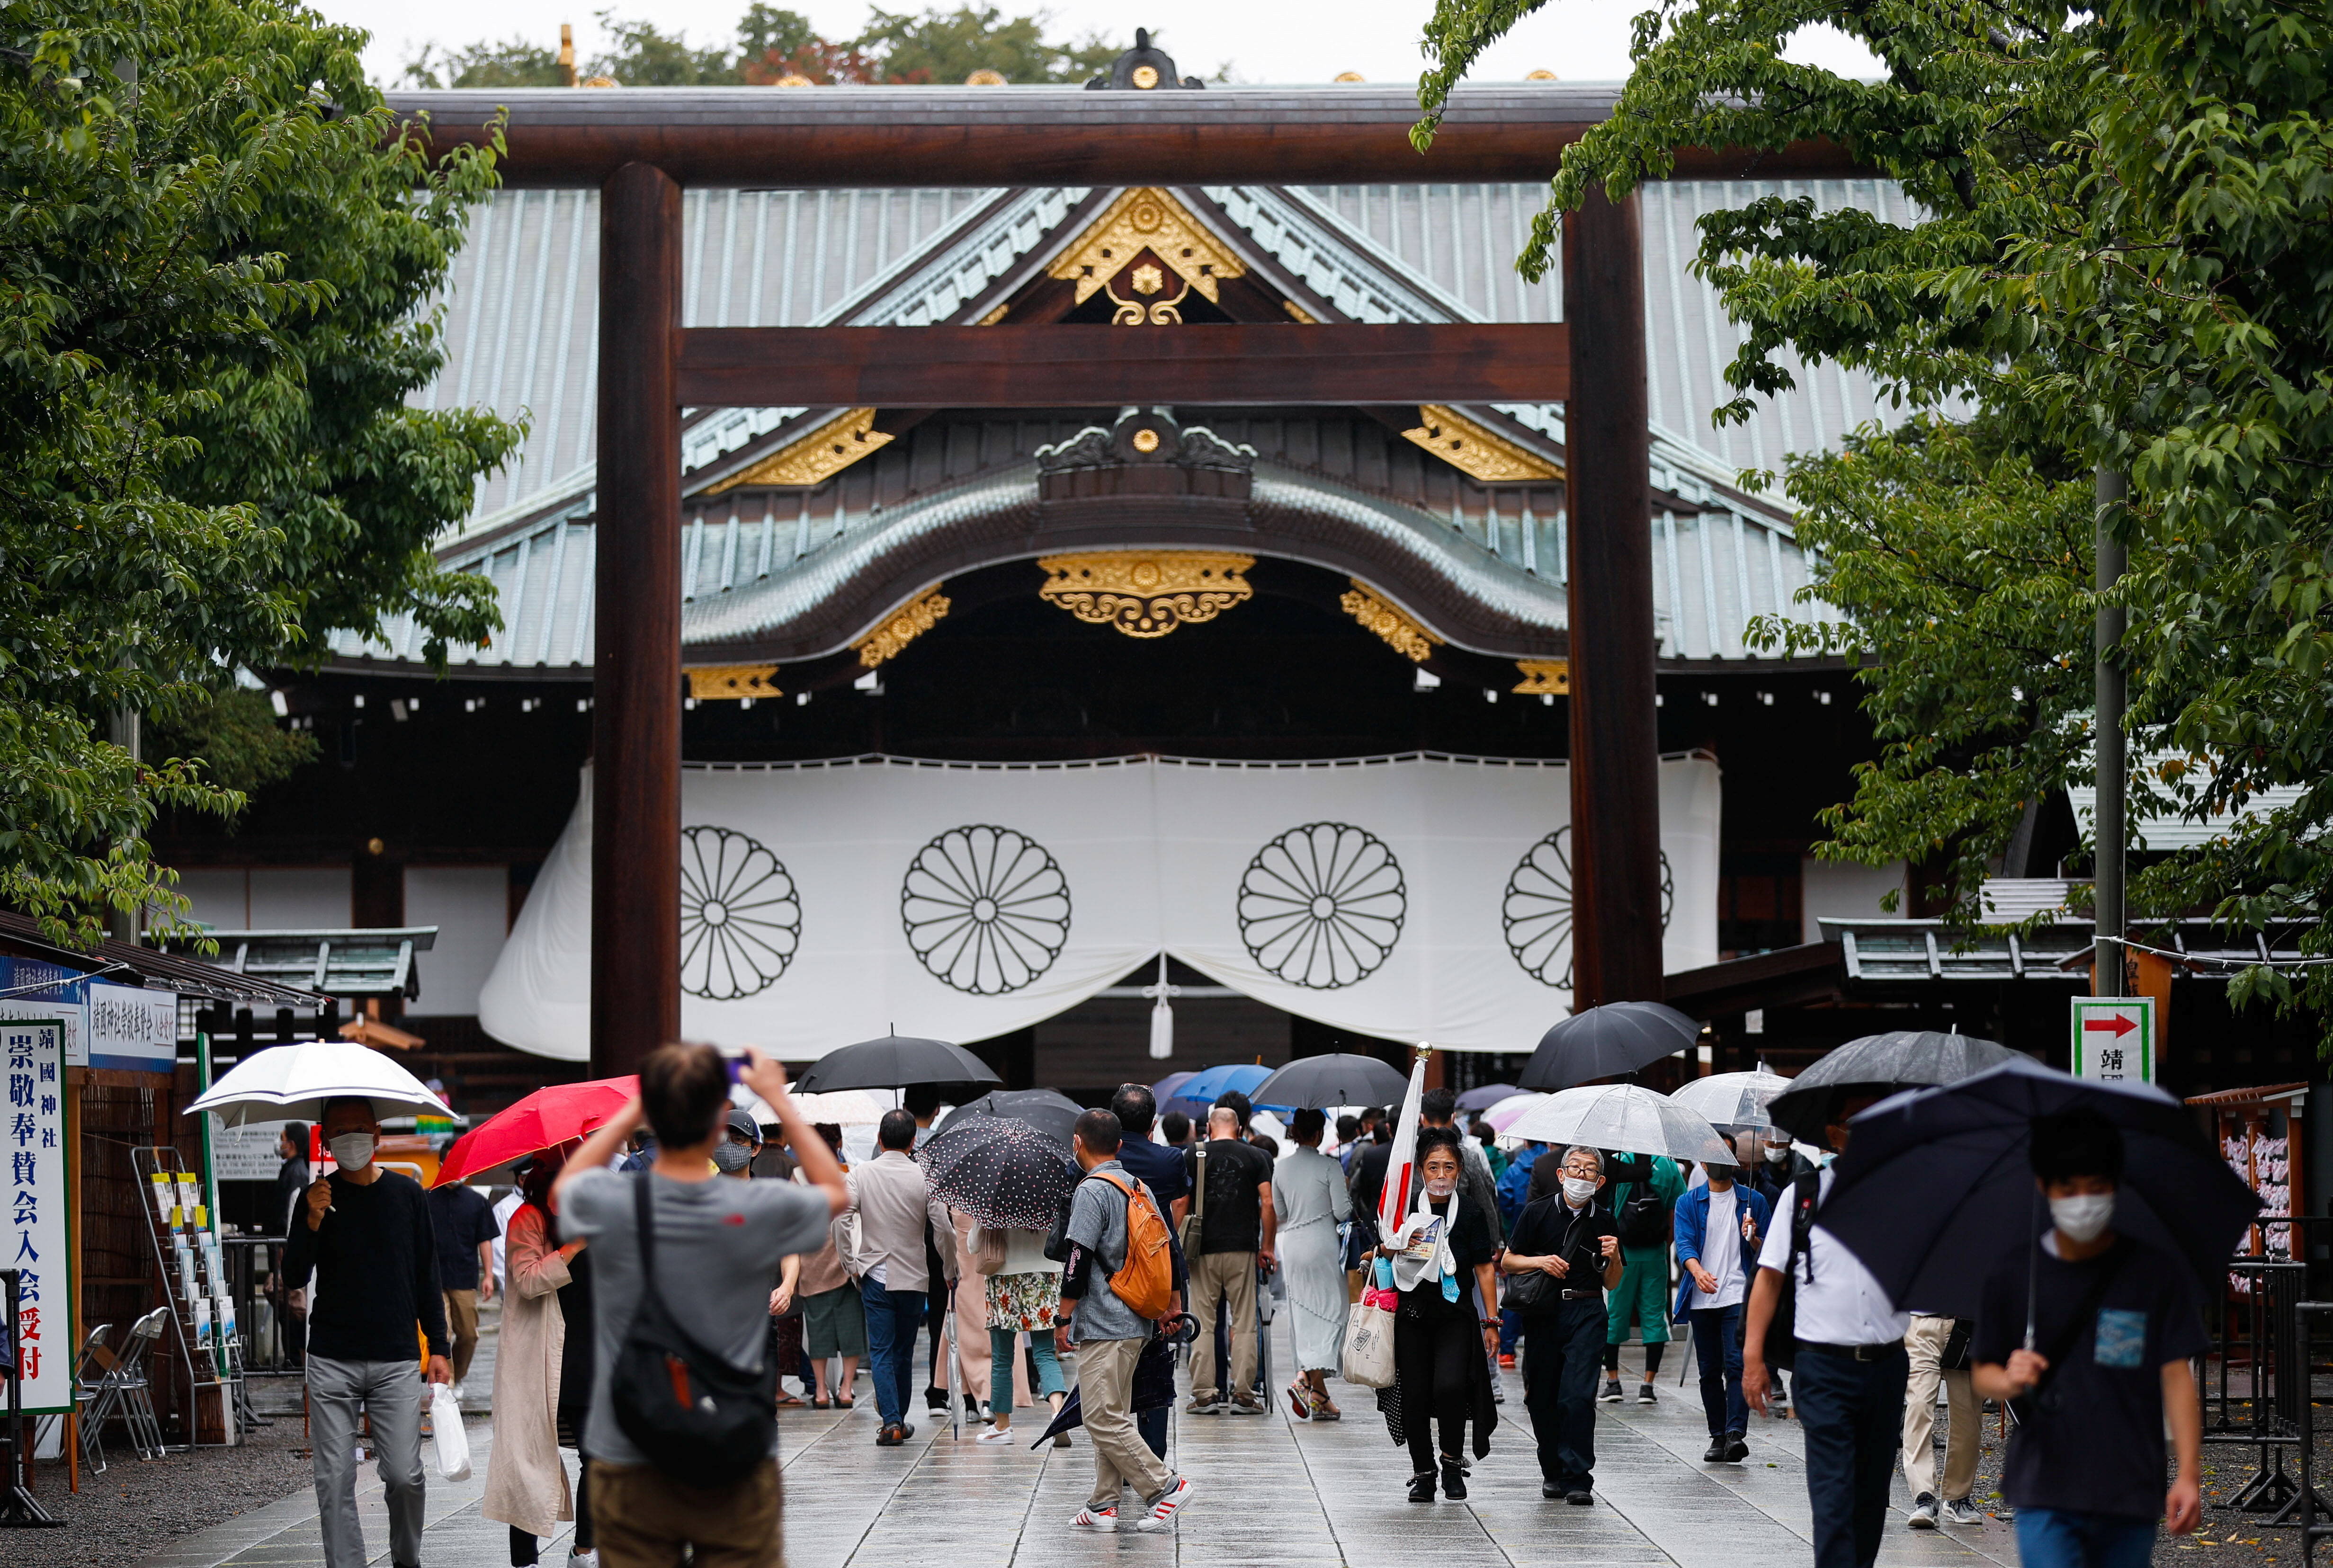 People carry umbrellas as they visit Yasukuni Shrine in Tokyo, Japan August 15, 2021. REUTERS/Issei Kato